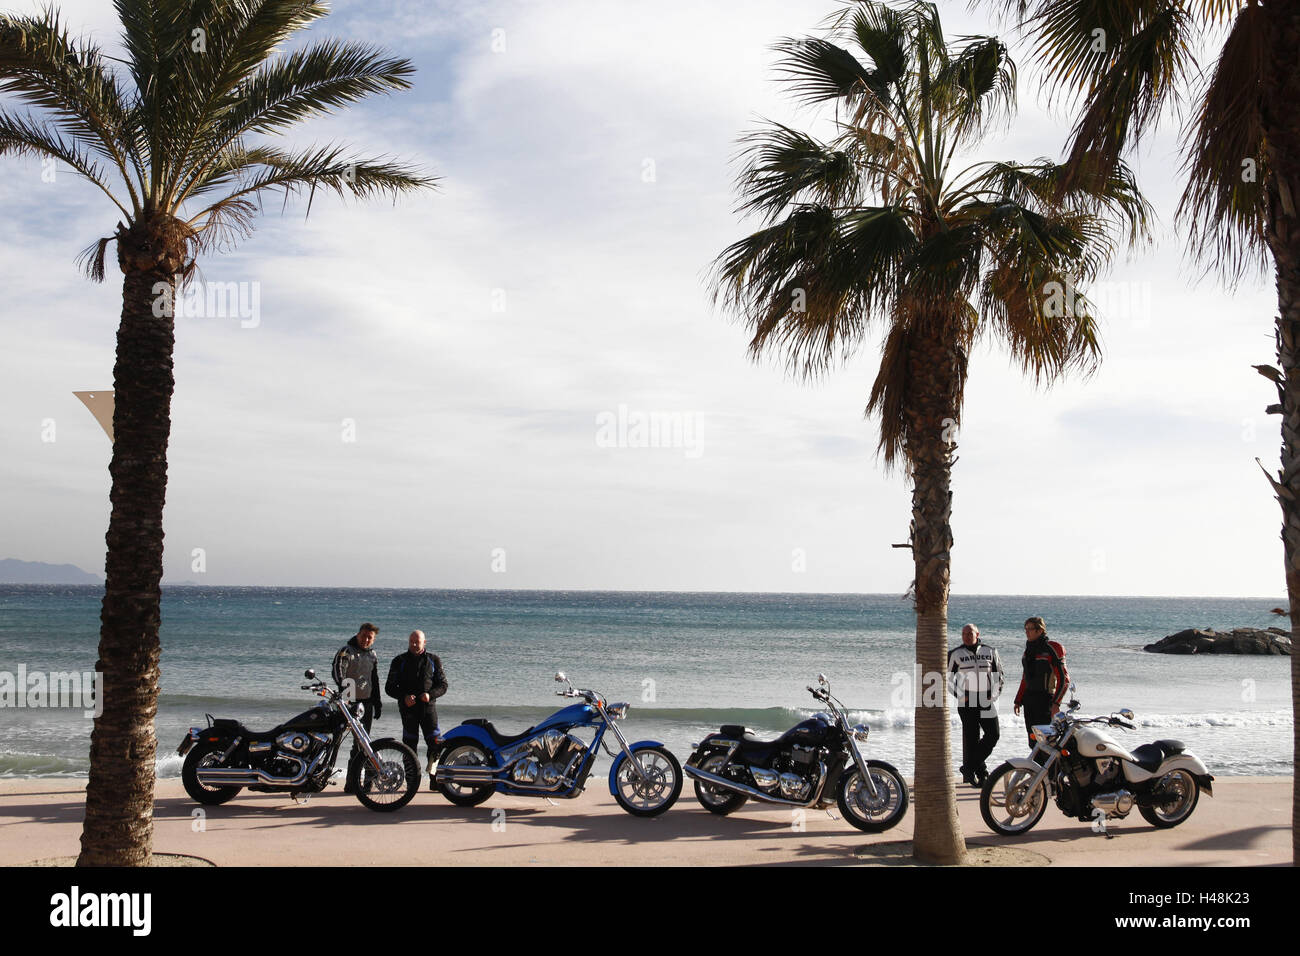 four motorcycles, cruisers, beach, palms, South of France, - Stock Image